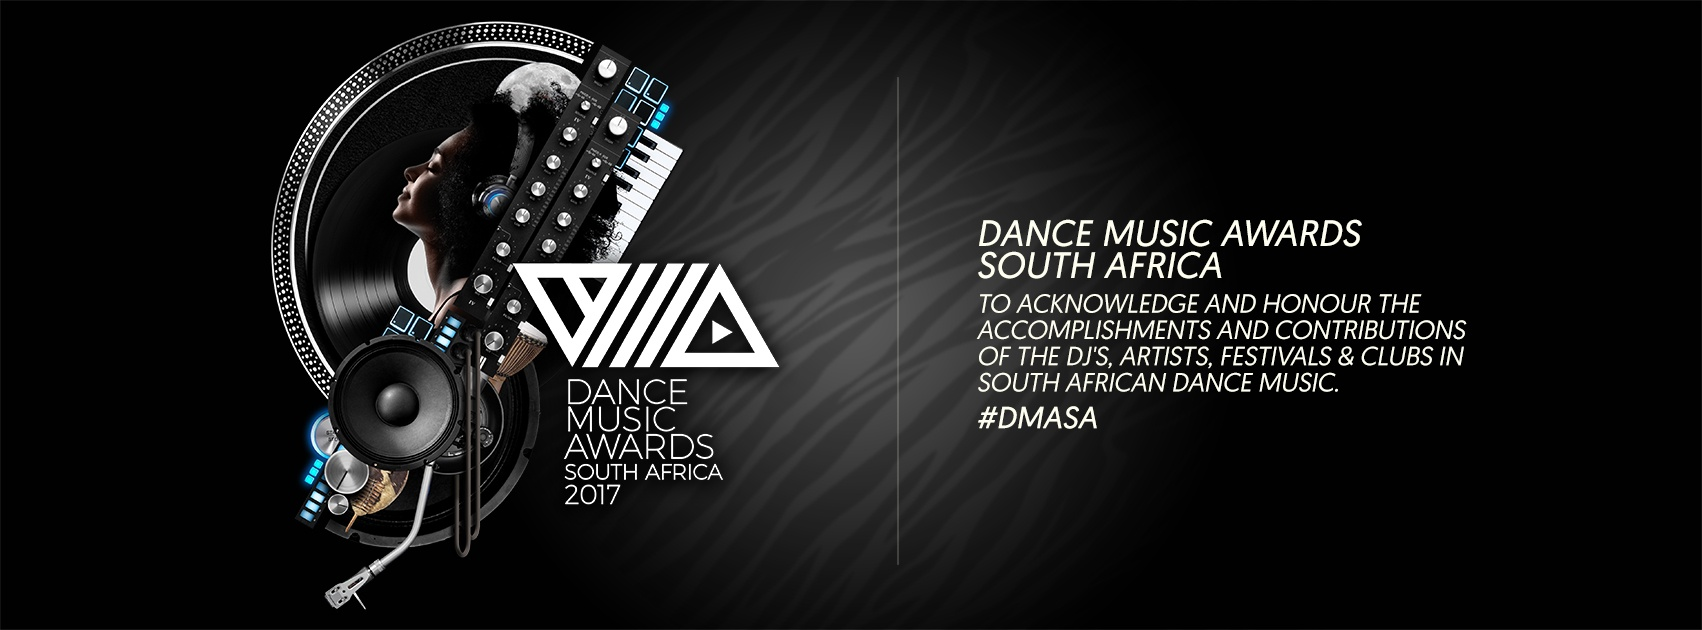 SA Now Has Its Own Dance Music Awards – Texx and the City